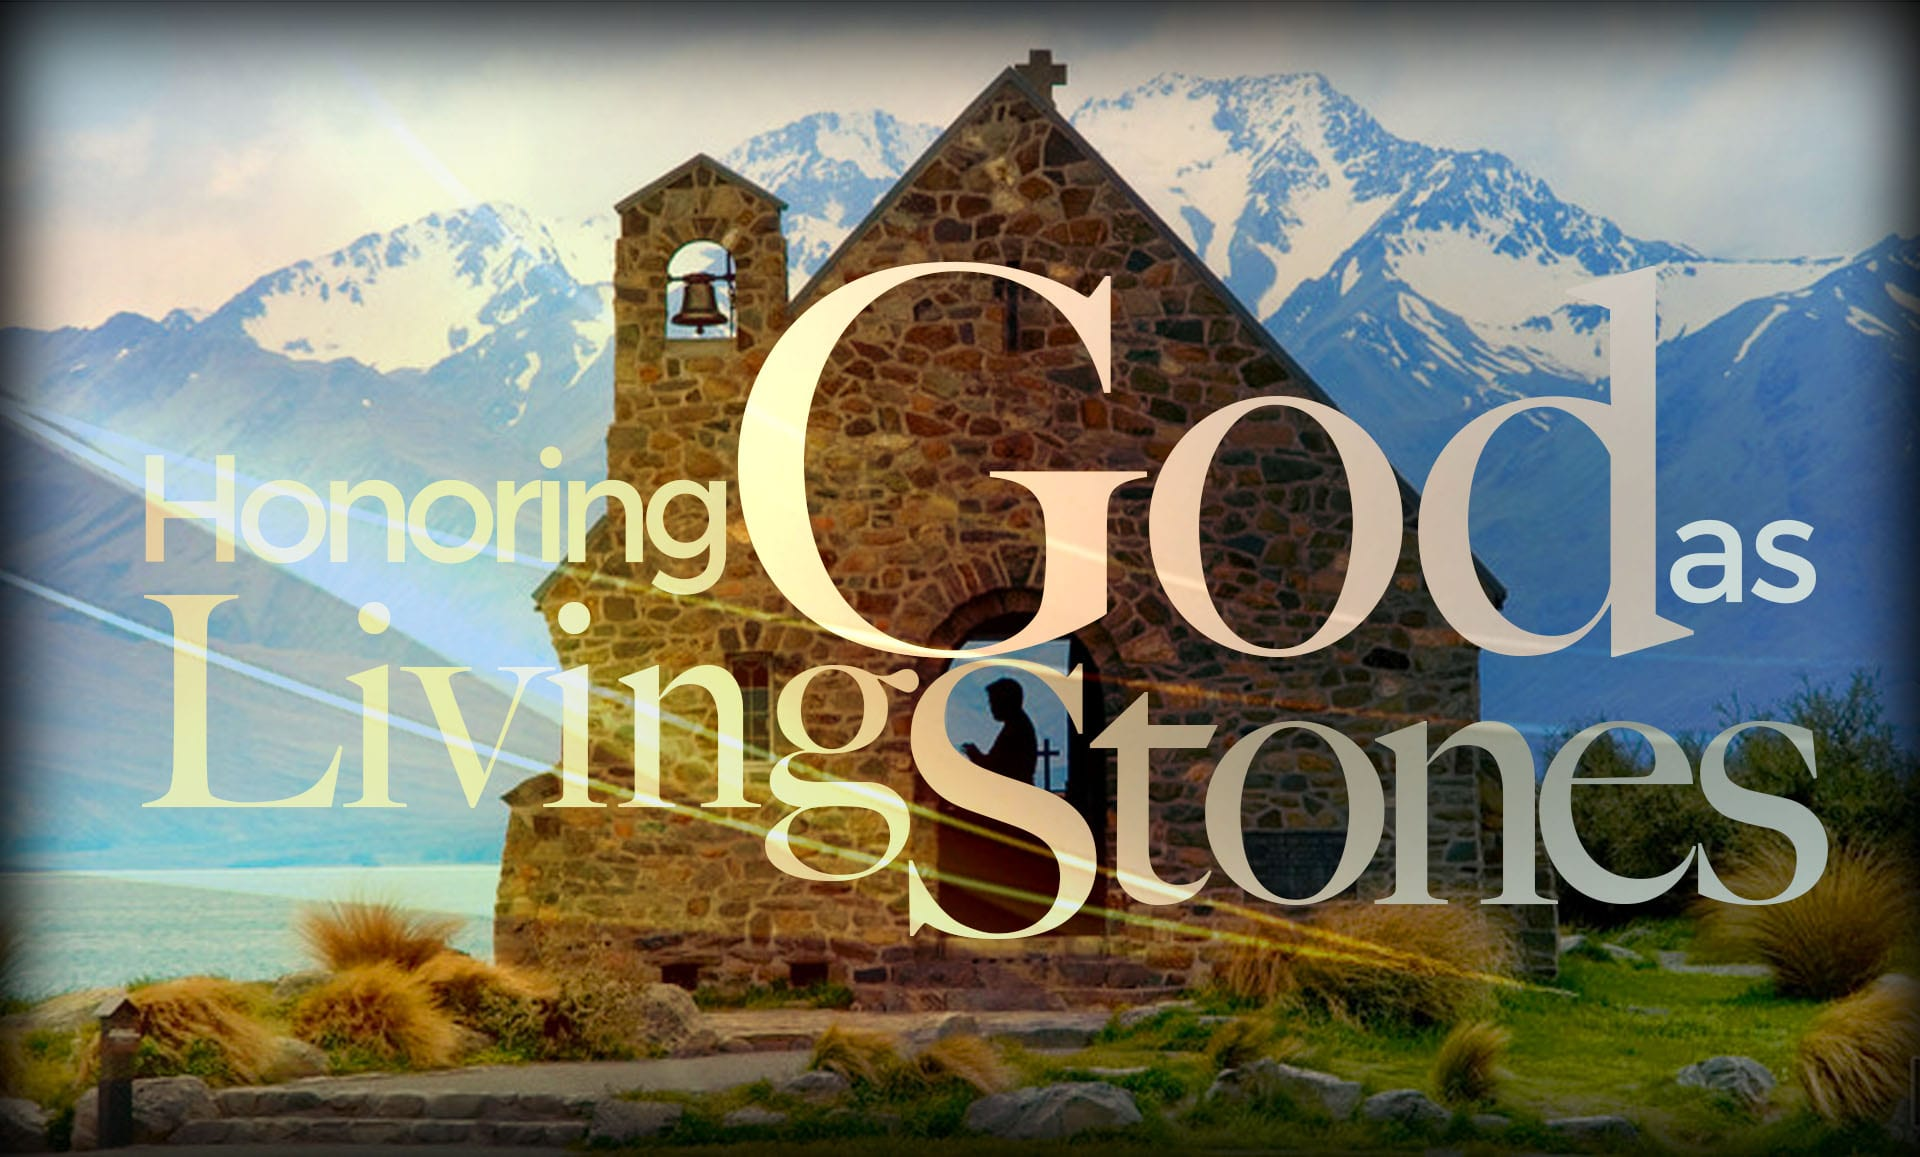 Honoring God as Living Stones